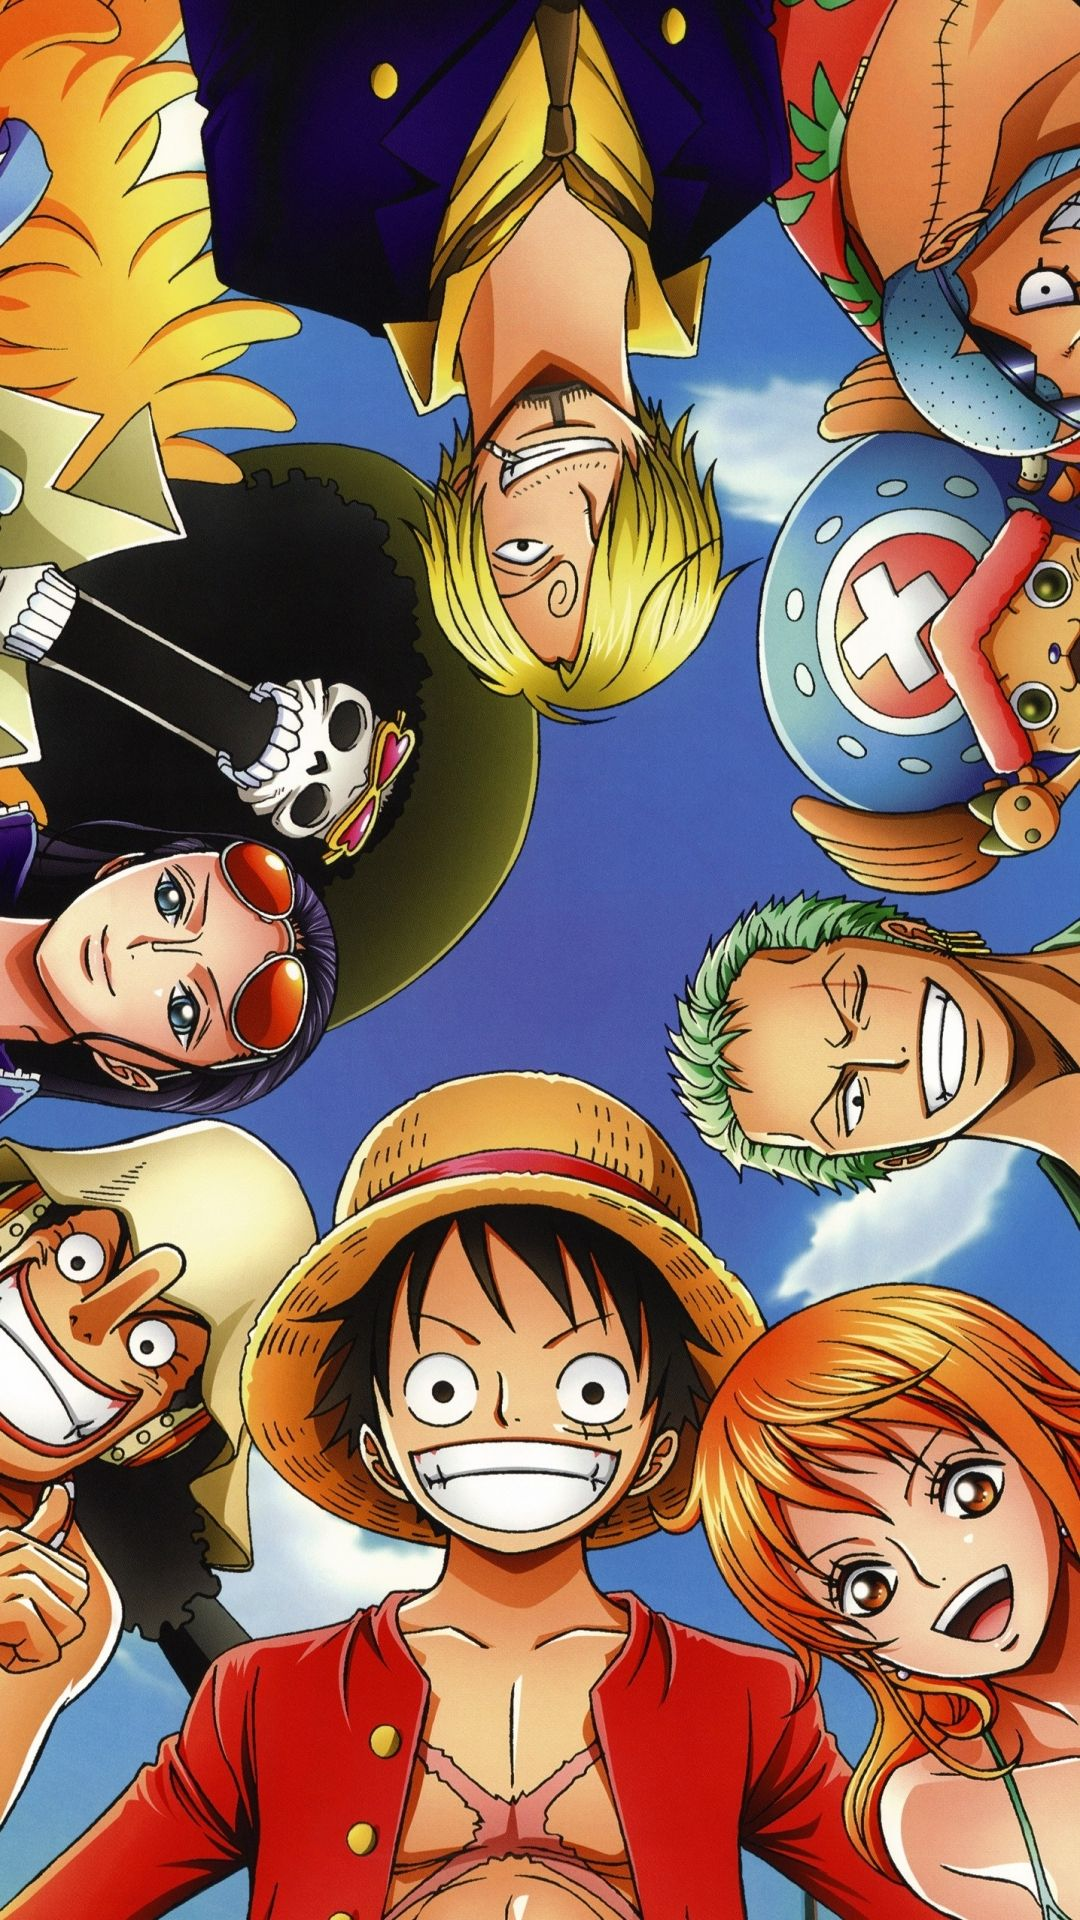 One Piece Wallpaper Download Free One Piece Wallpaper Iphone One Piece Anime Anime Wallpaper